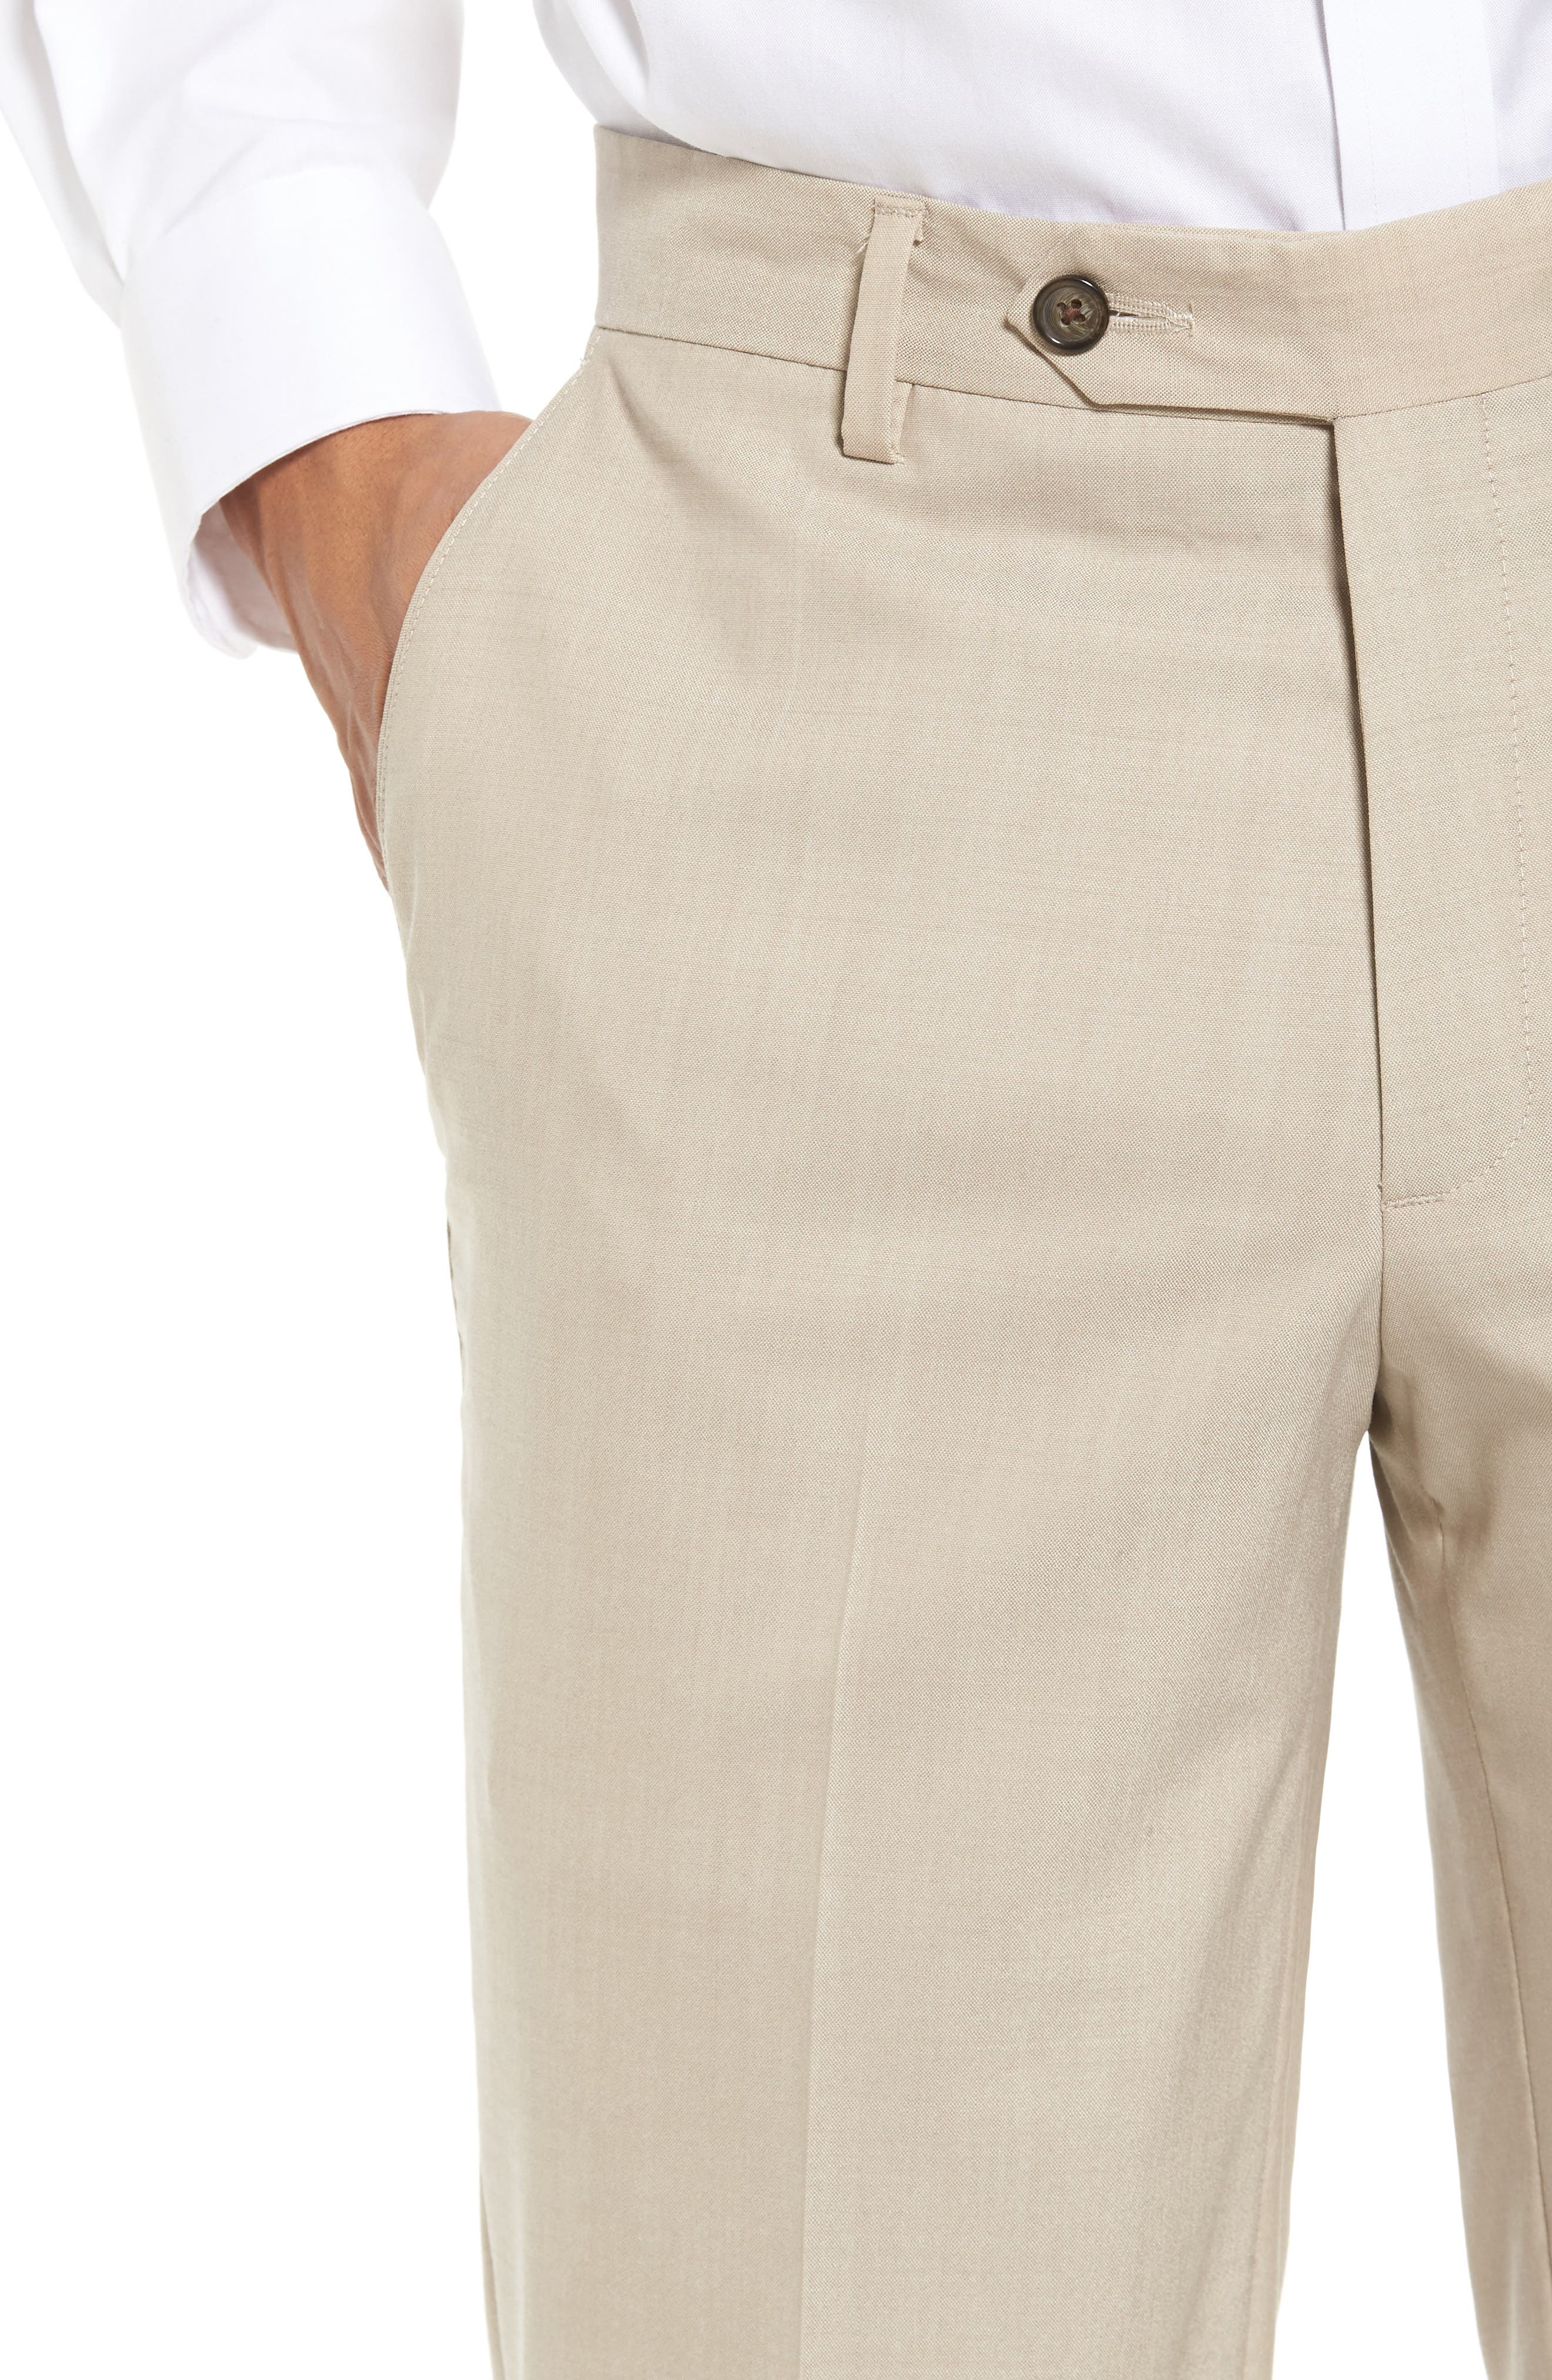 Flat Front Stretch Solid Wool Trousers,                             Alternate thumbnail 4, color,                             Tan